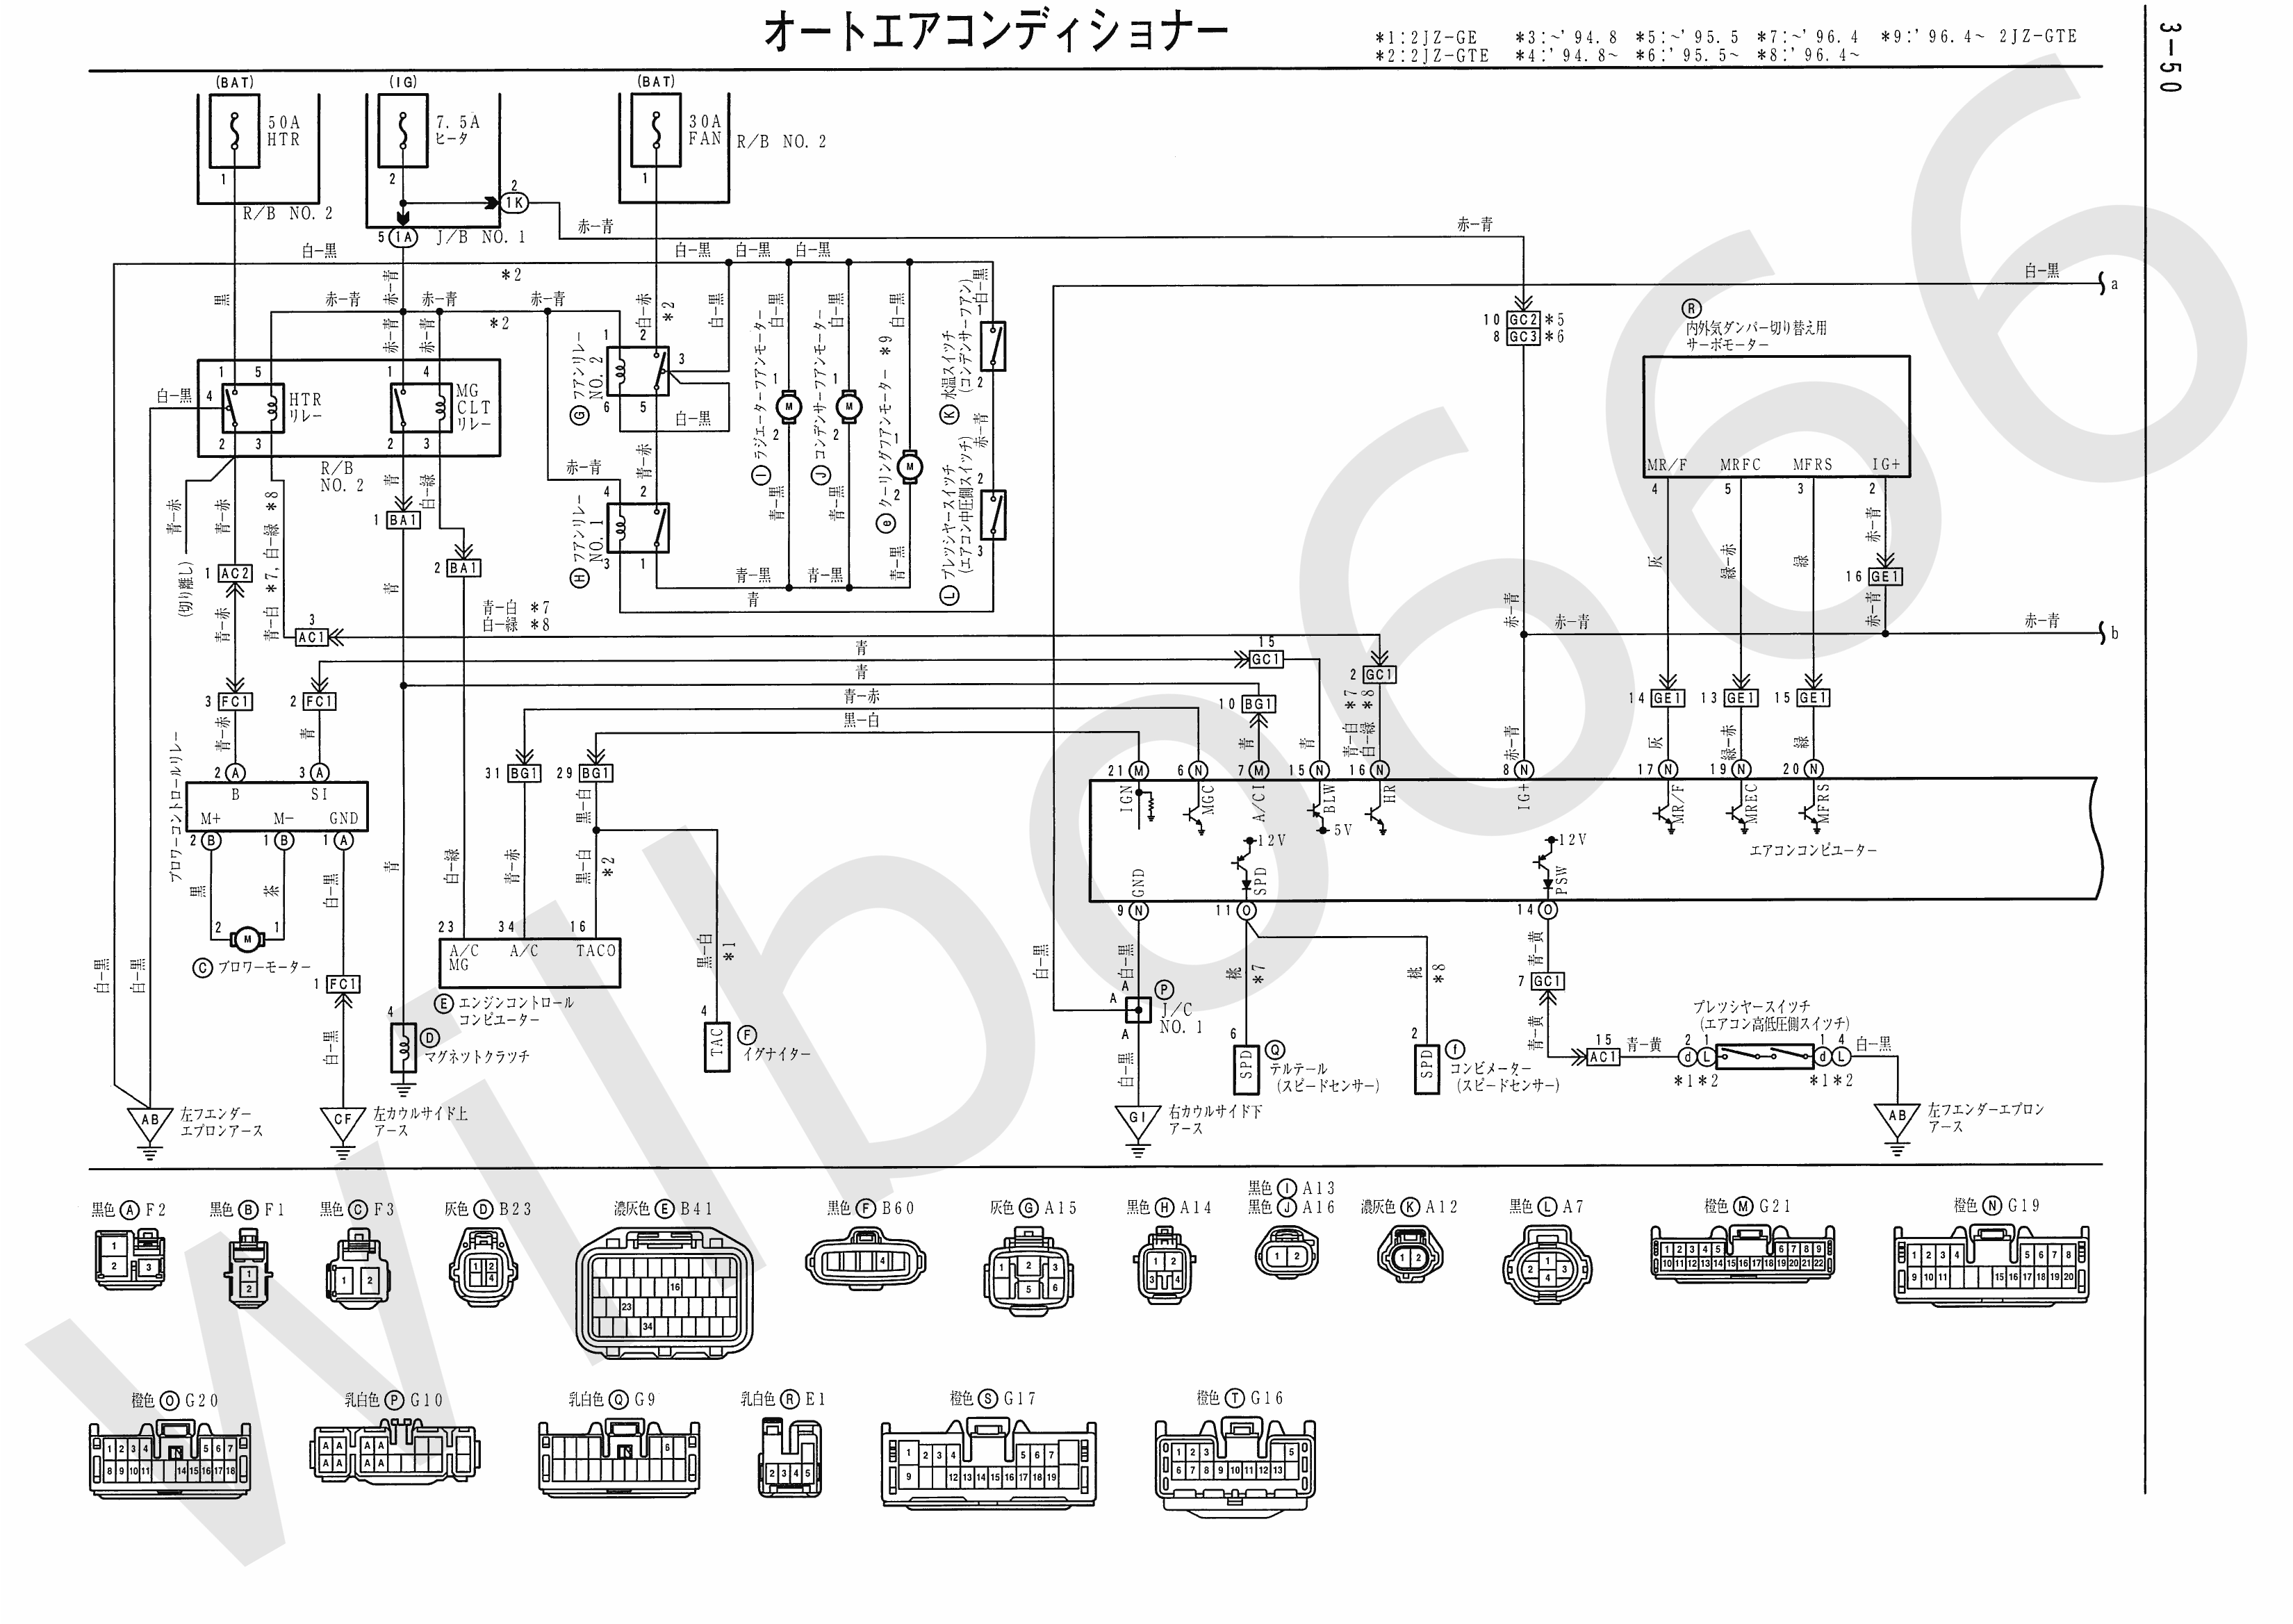 Motorcycle Alternator Wiring Diagram Library Schematic For A Uk Plug 1jz Auto Electrical Rh Harvard Edu Co Sistemagroup Me